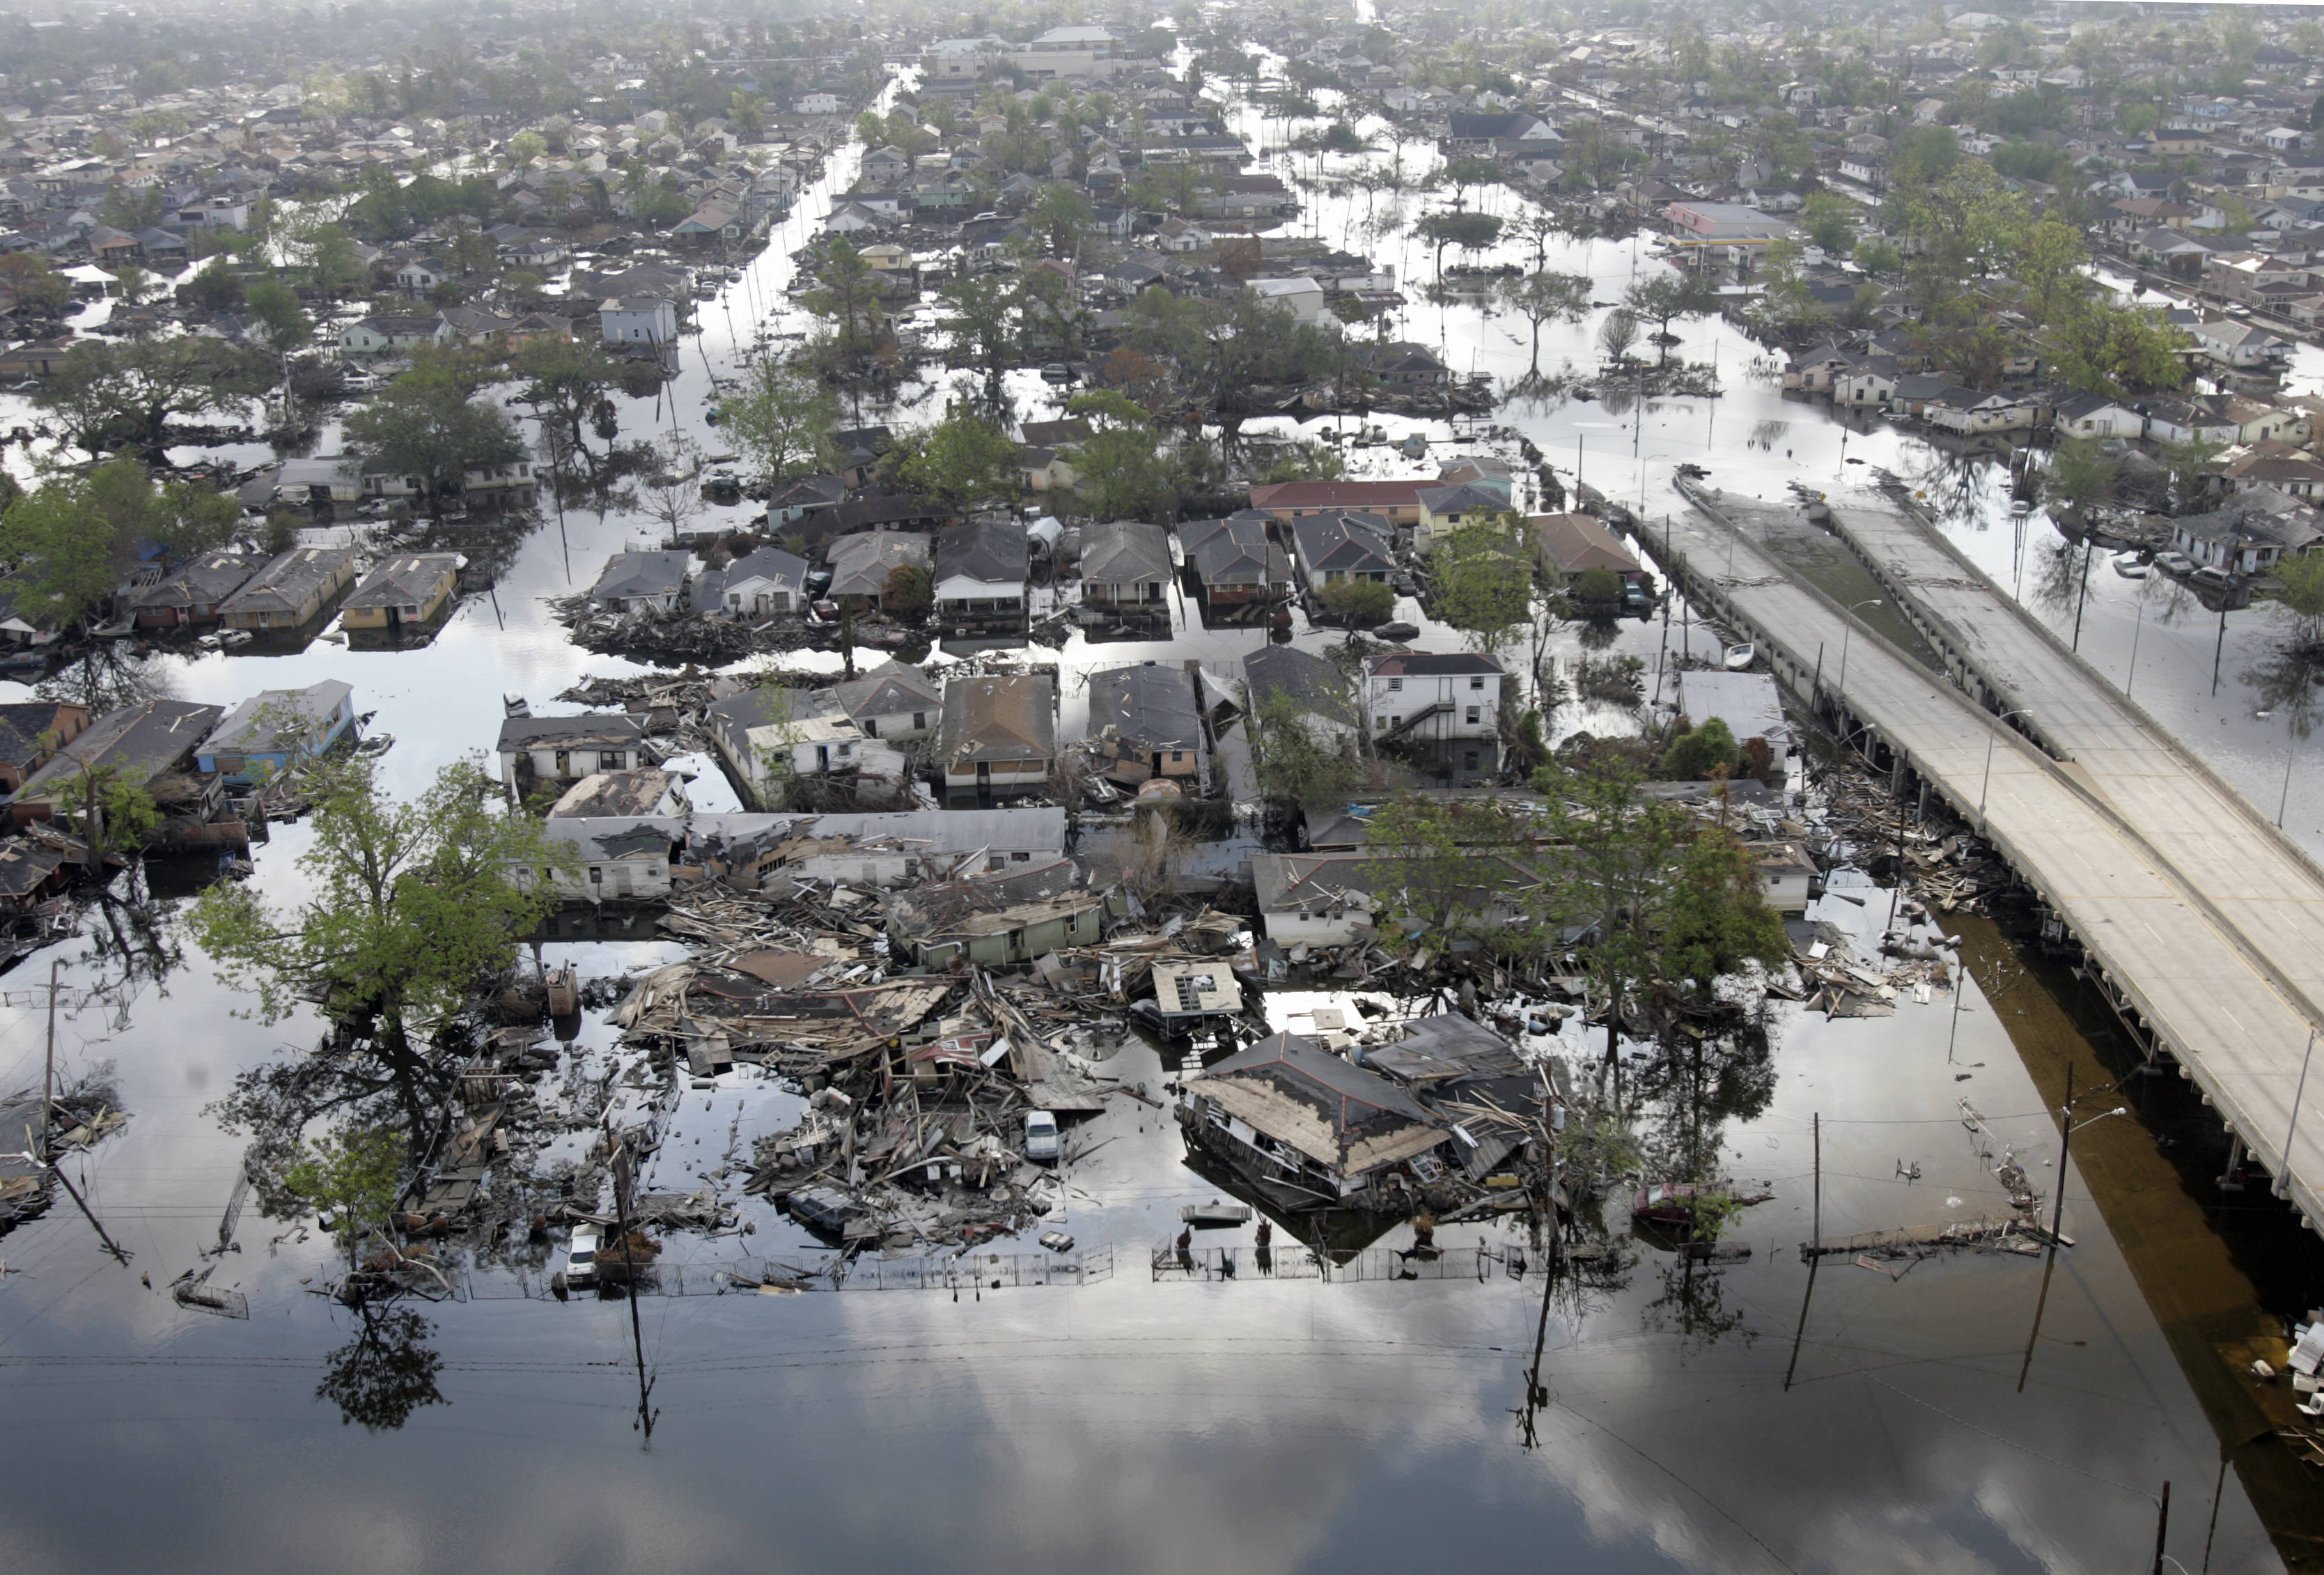 An aerial shot of houses destroyed as well as a highway and roads flooded.